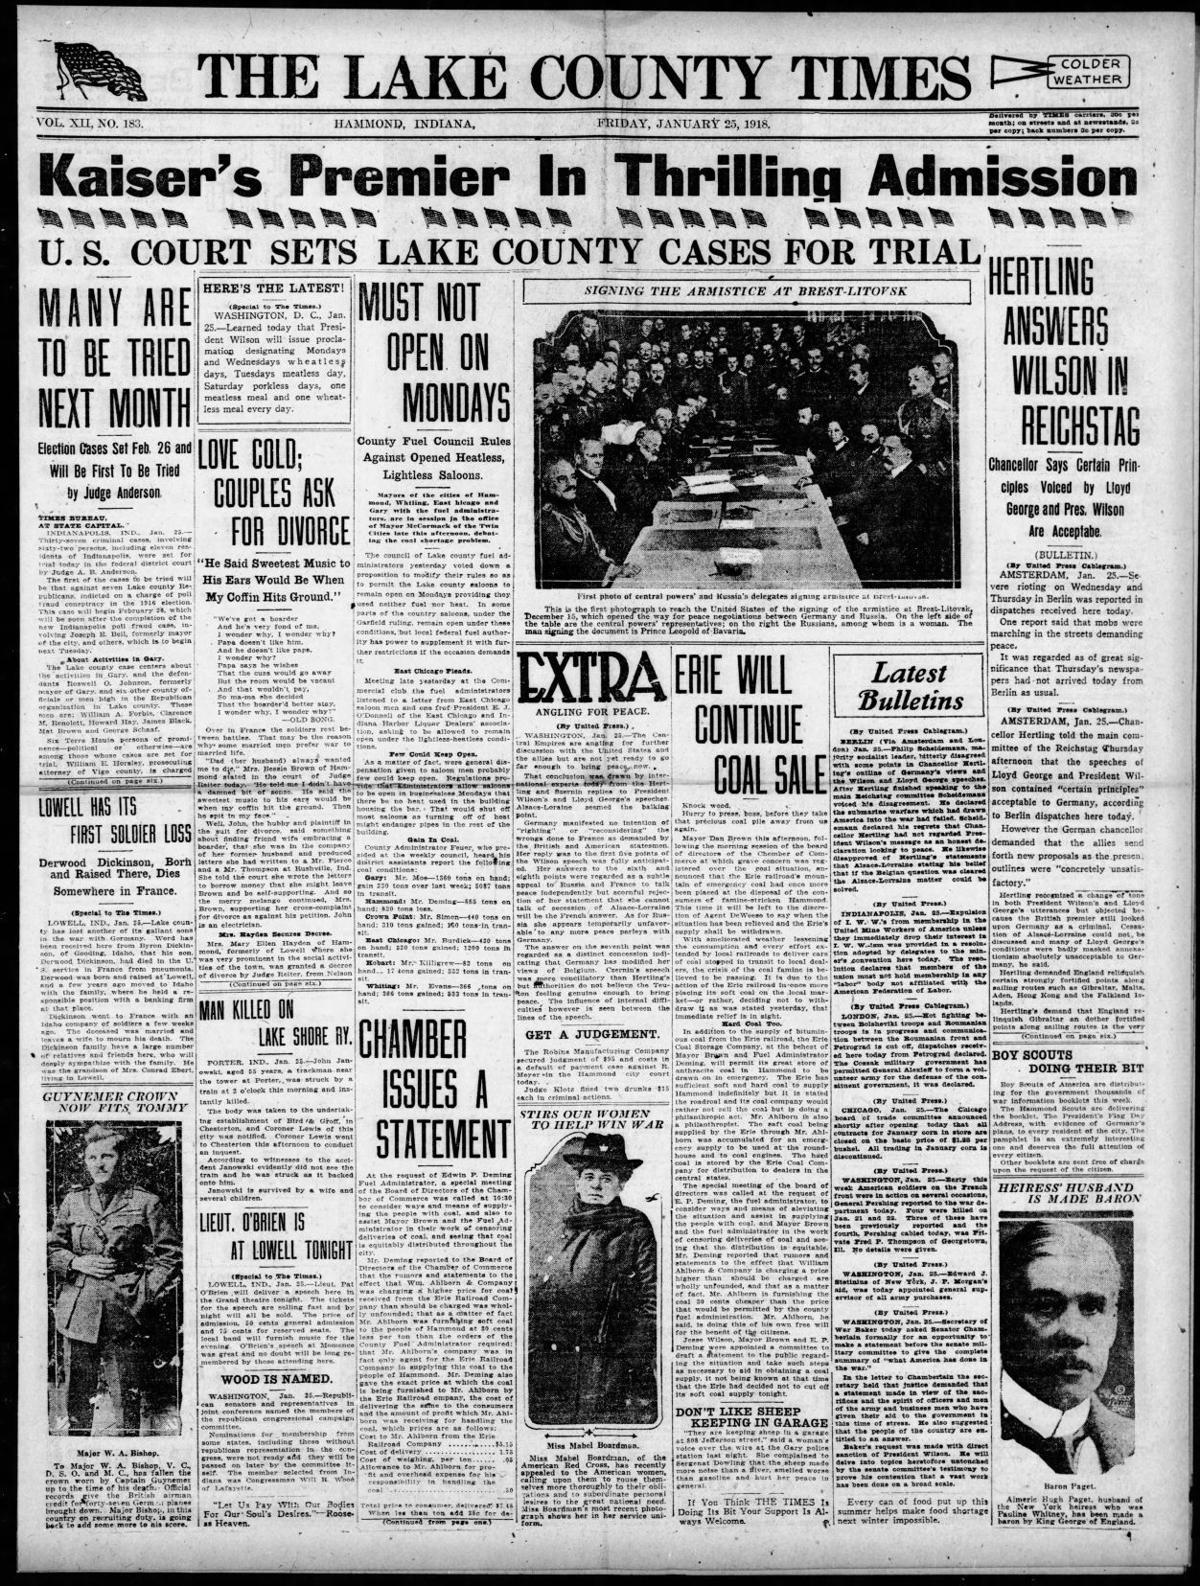 Jan. 25, 1918: U.S. Court Sets Lake County Cases For Trial